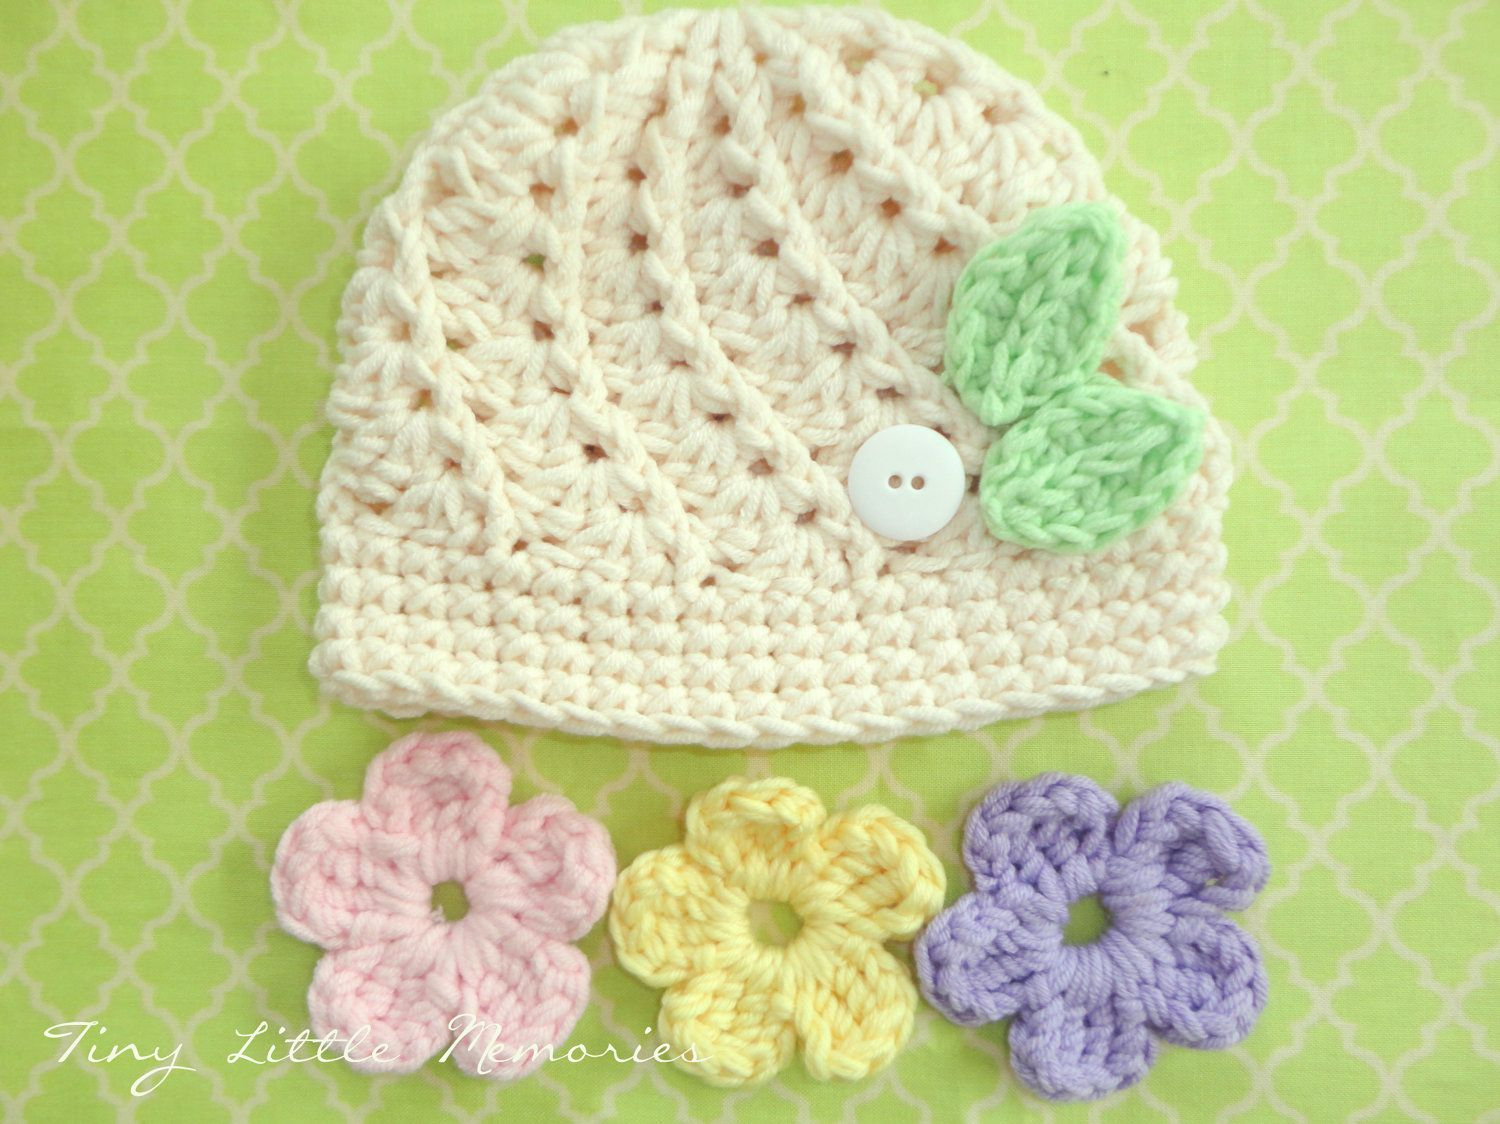 Baby Crochet Hat with Interchangeable Flowers | Sew amazing ...